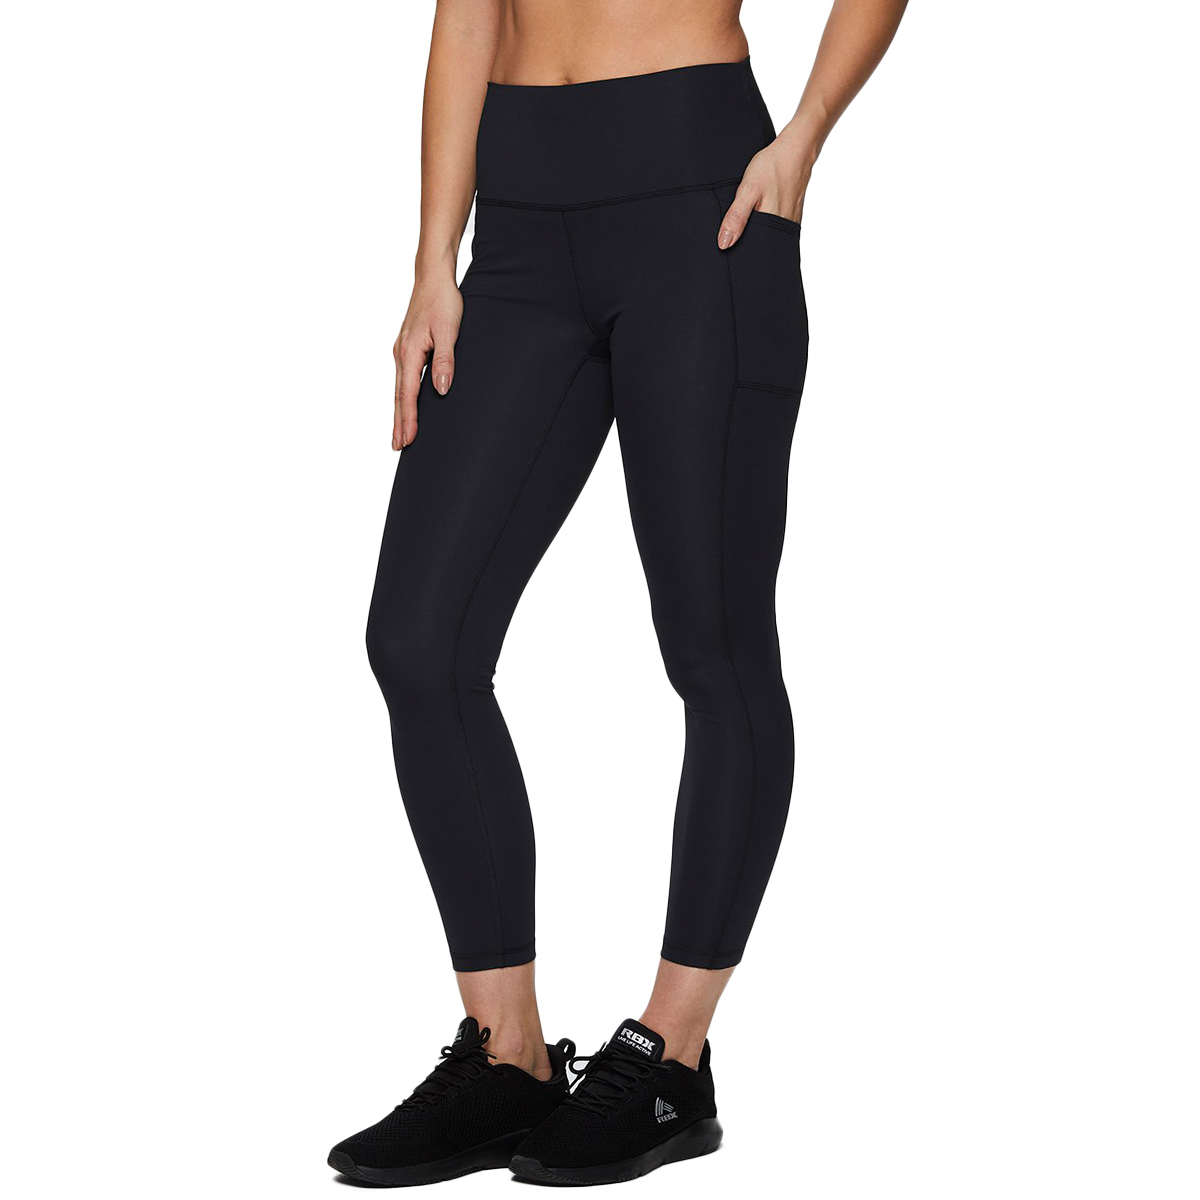 RBX Women's Prime Tech Flex Ultra Hold Legging - Black, S